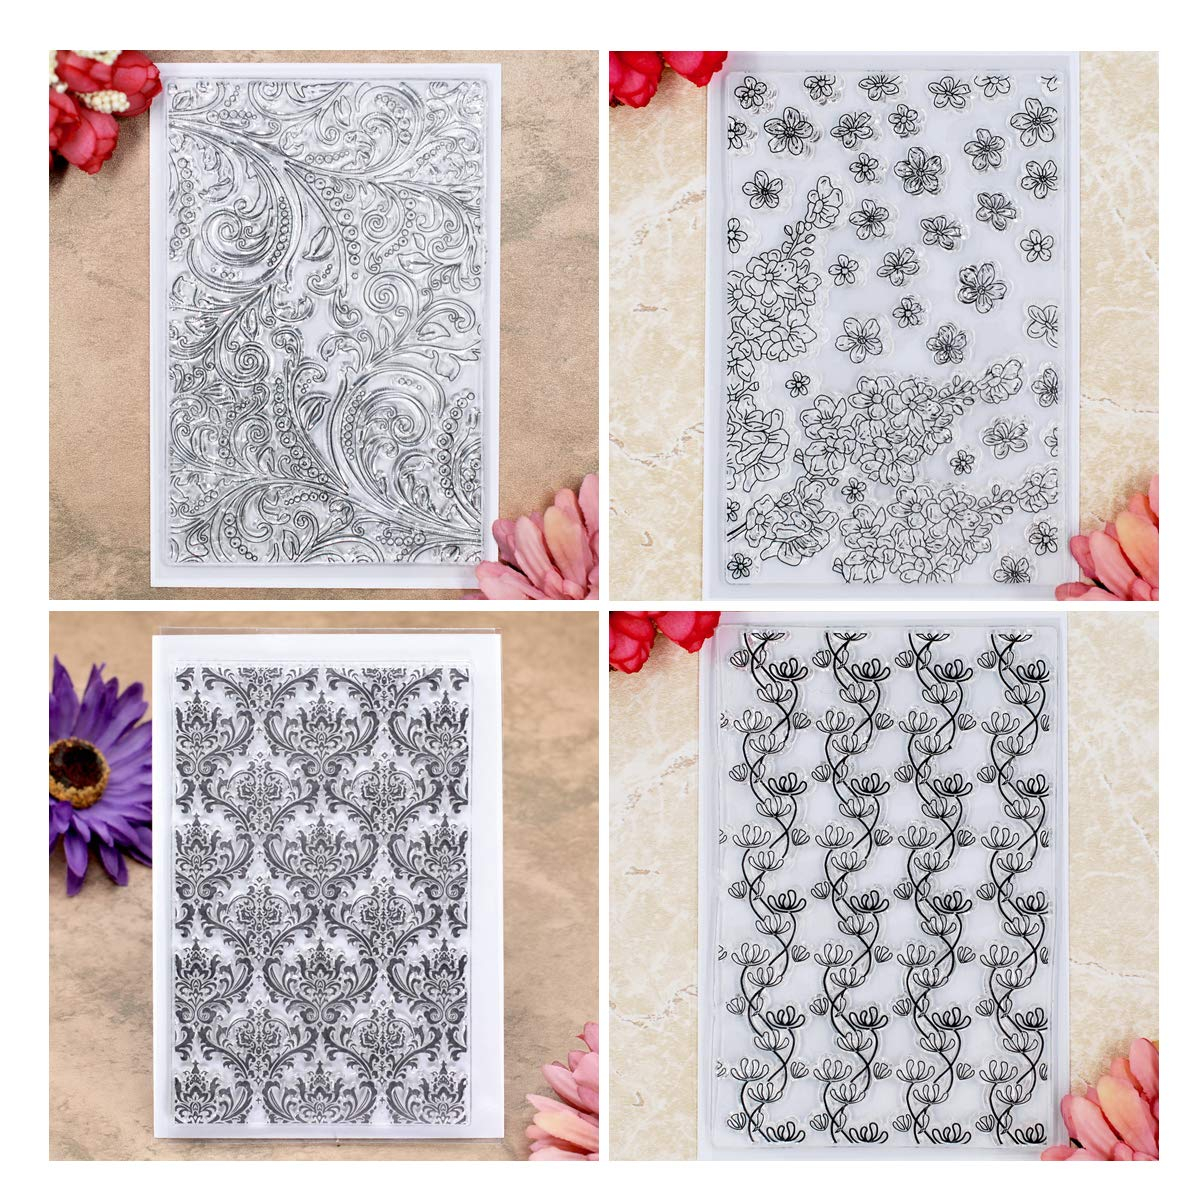 Kwan Crafts 4 Sheets Different Style Flowers Leaves Background Clear Stamps for Card Making Decoration and DIY Scrapbooking